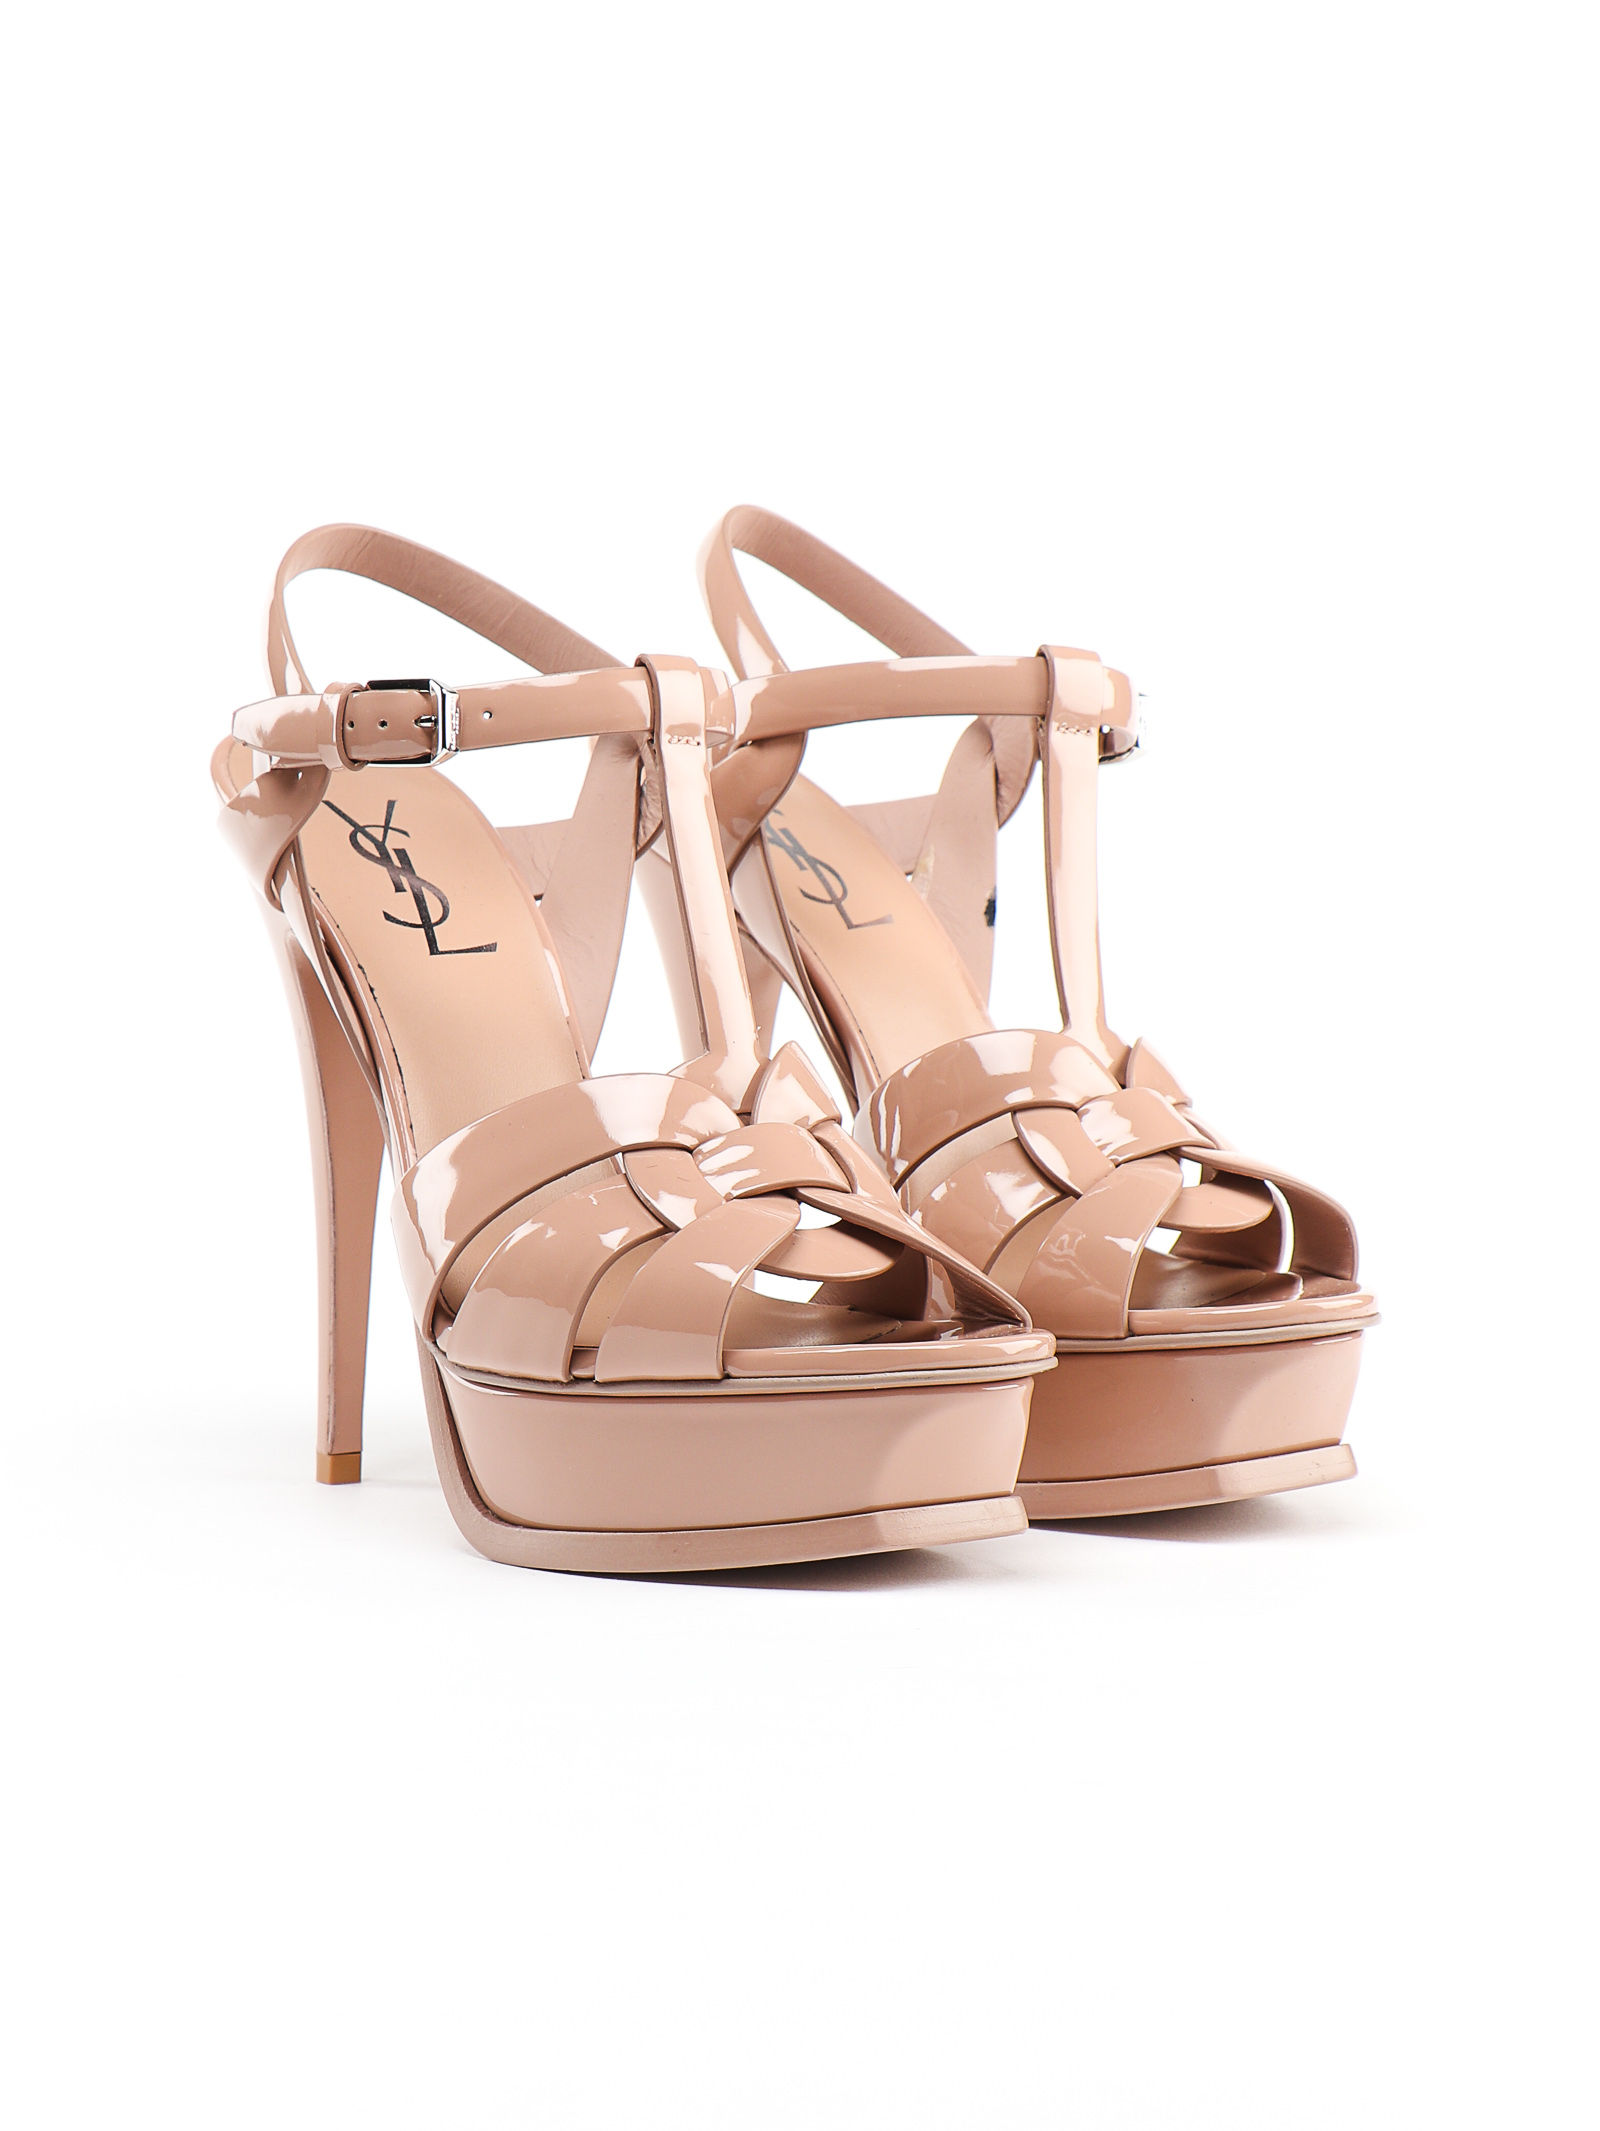 Picture of Saint Laurent | Tribute 105 Sandal